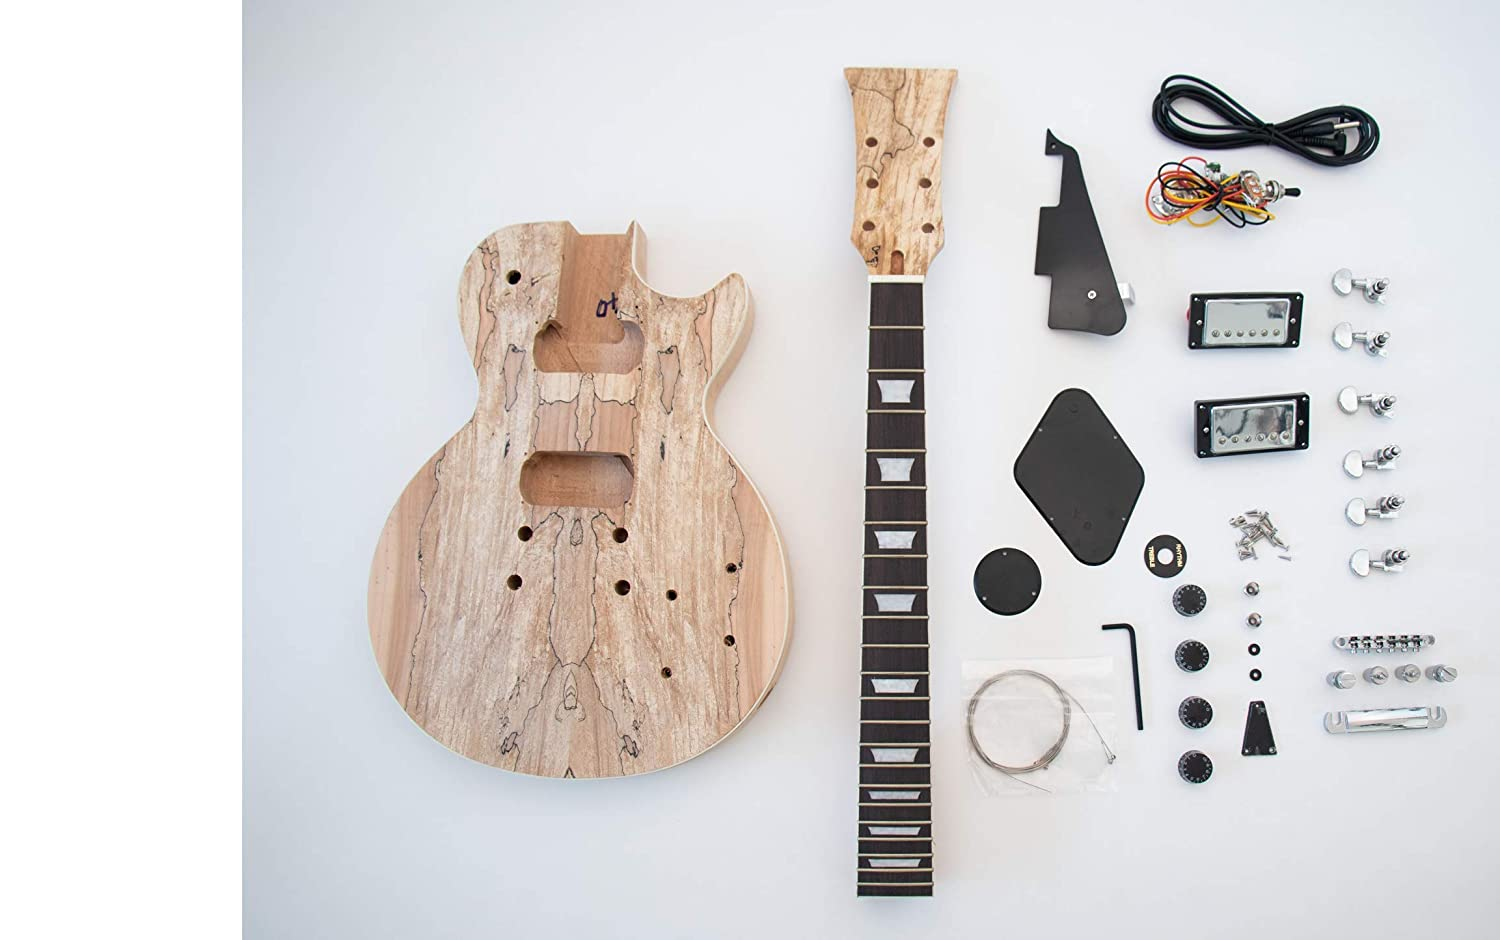 Spalted Maple LP Guitar - DIY Build Your Own Guitar Kit The FretWire SKU057